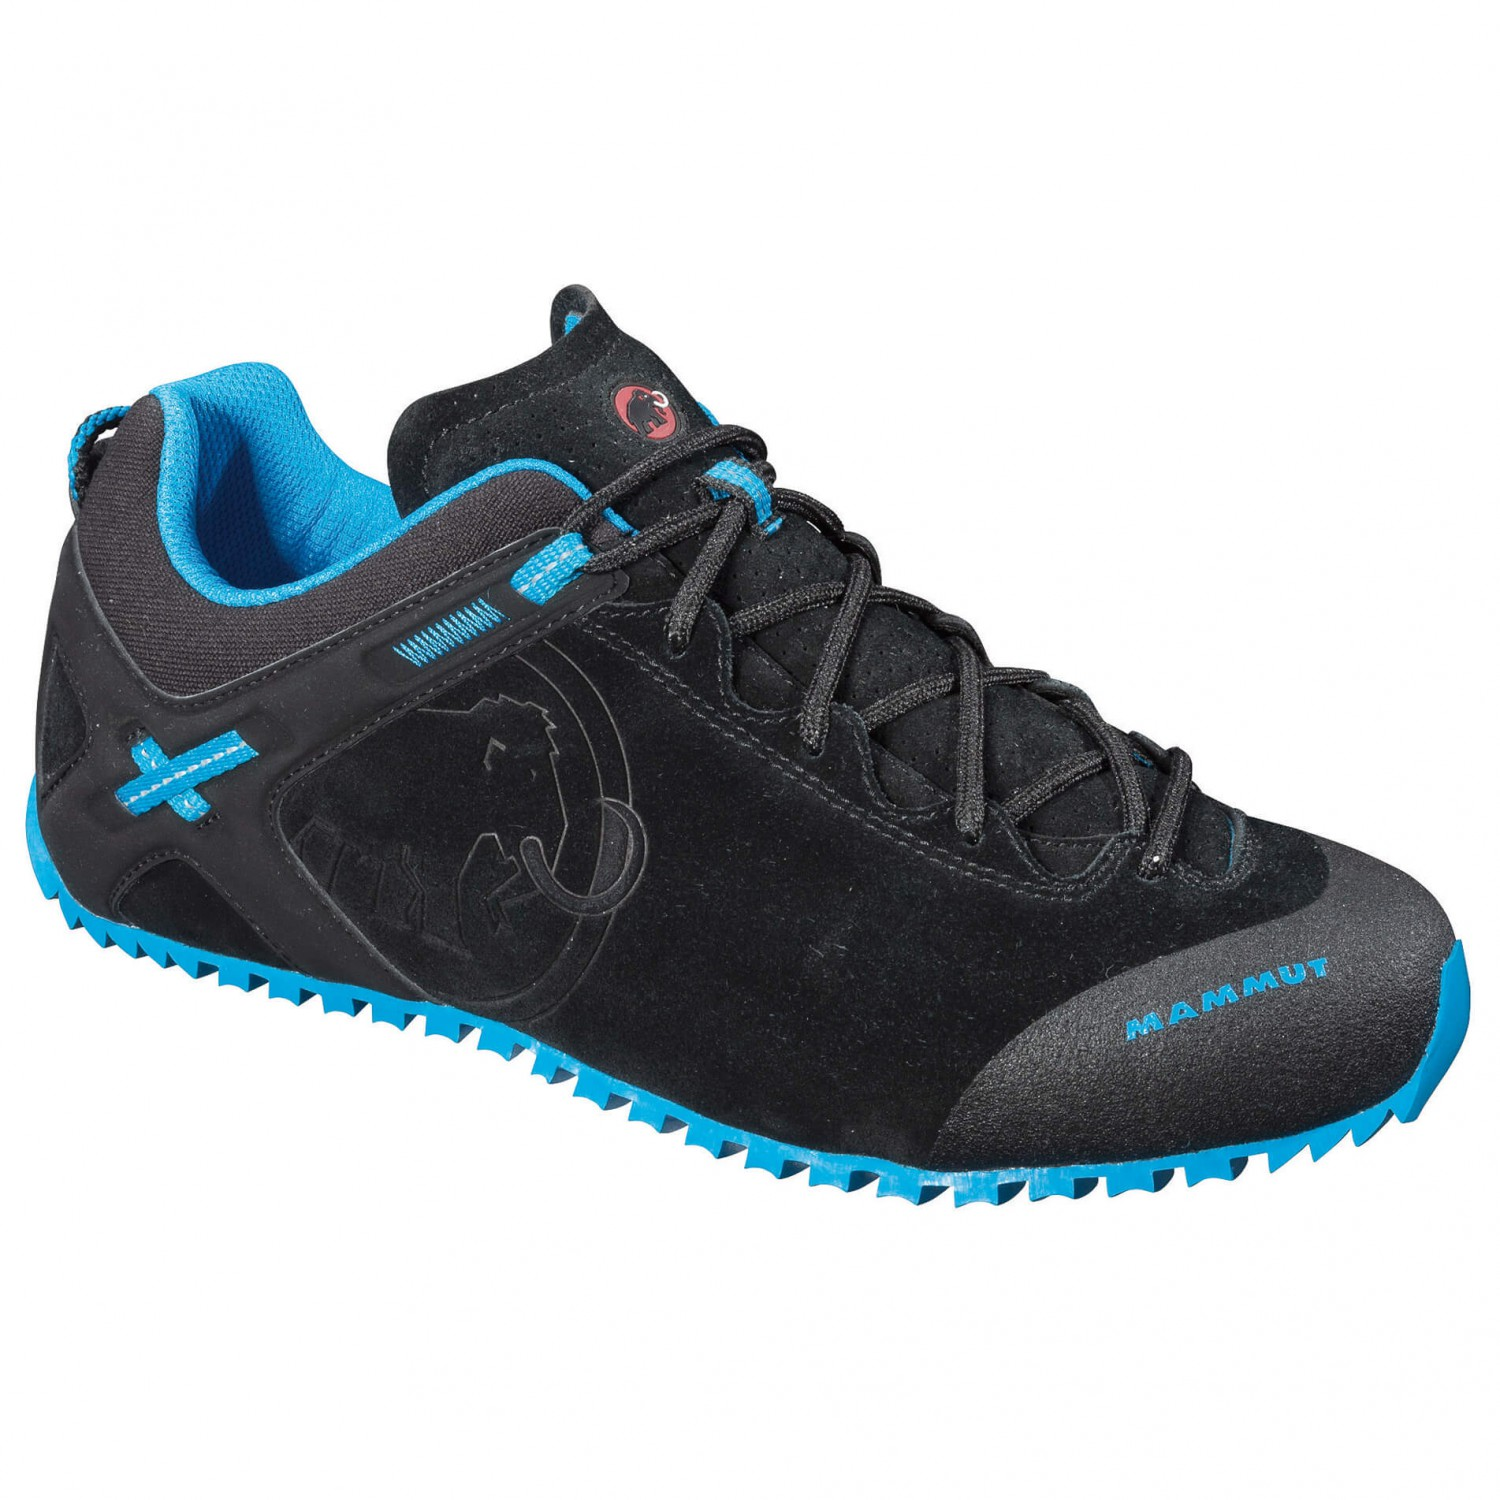 los angeles cheaper factory authentic Mammut - Needle - Approach shoes